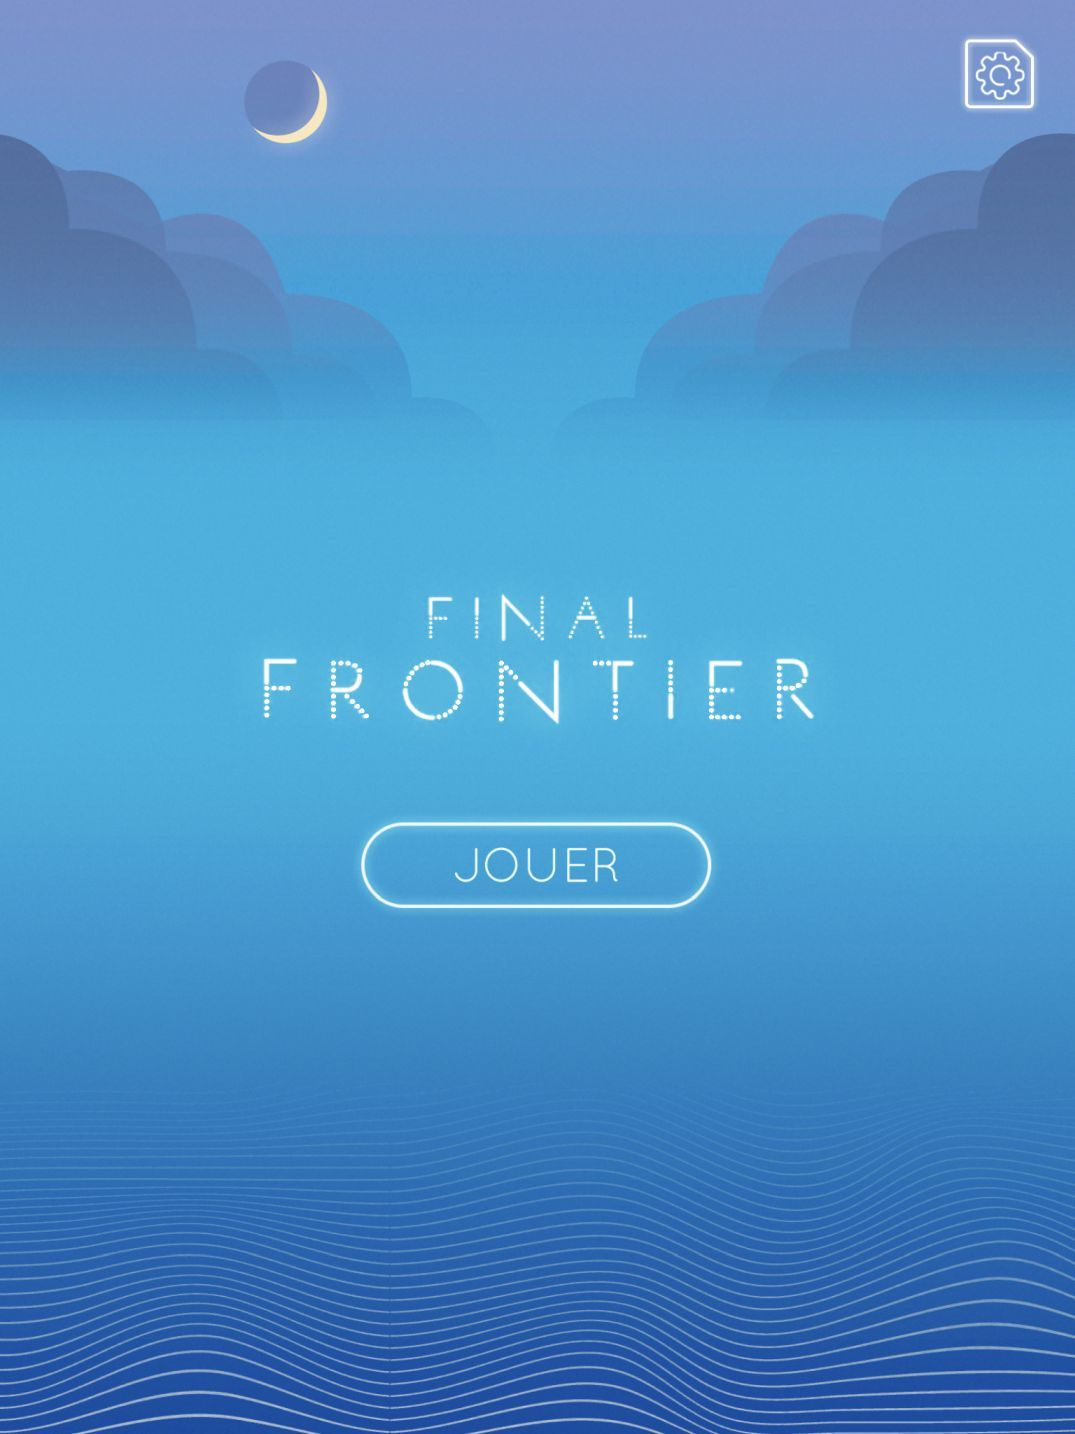 Final Frontier: A New Journey (copie d'écran 1 sur iPhone / iPad)